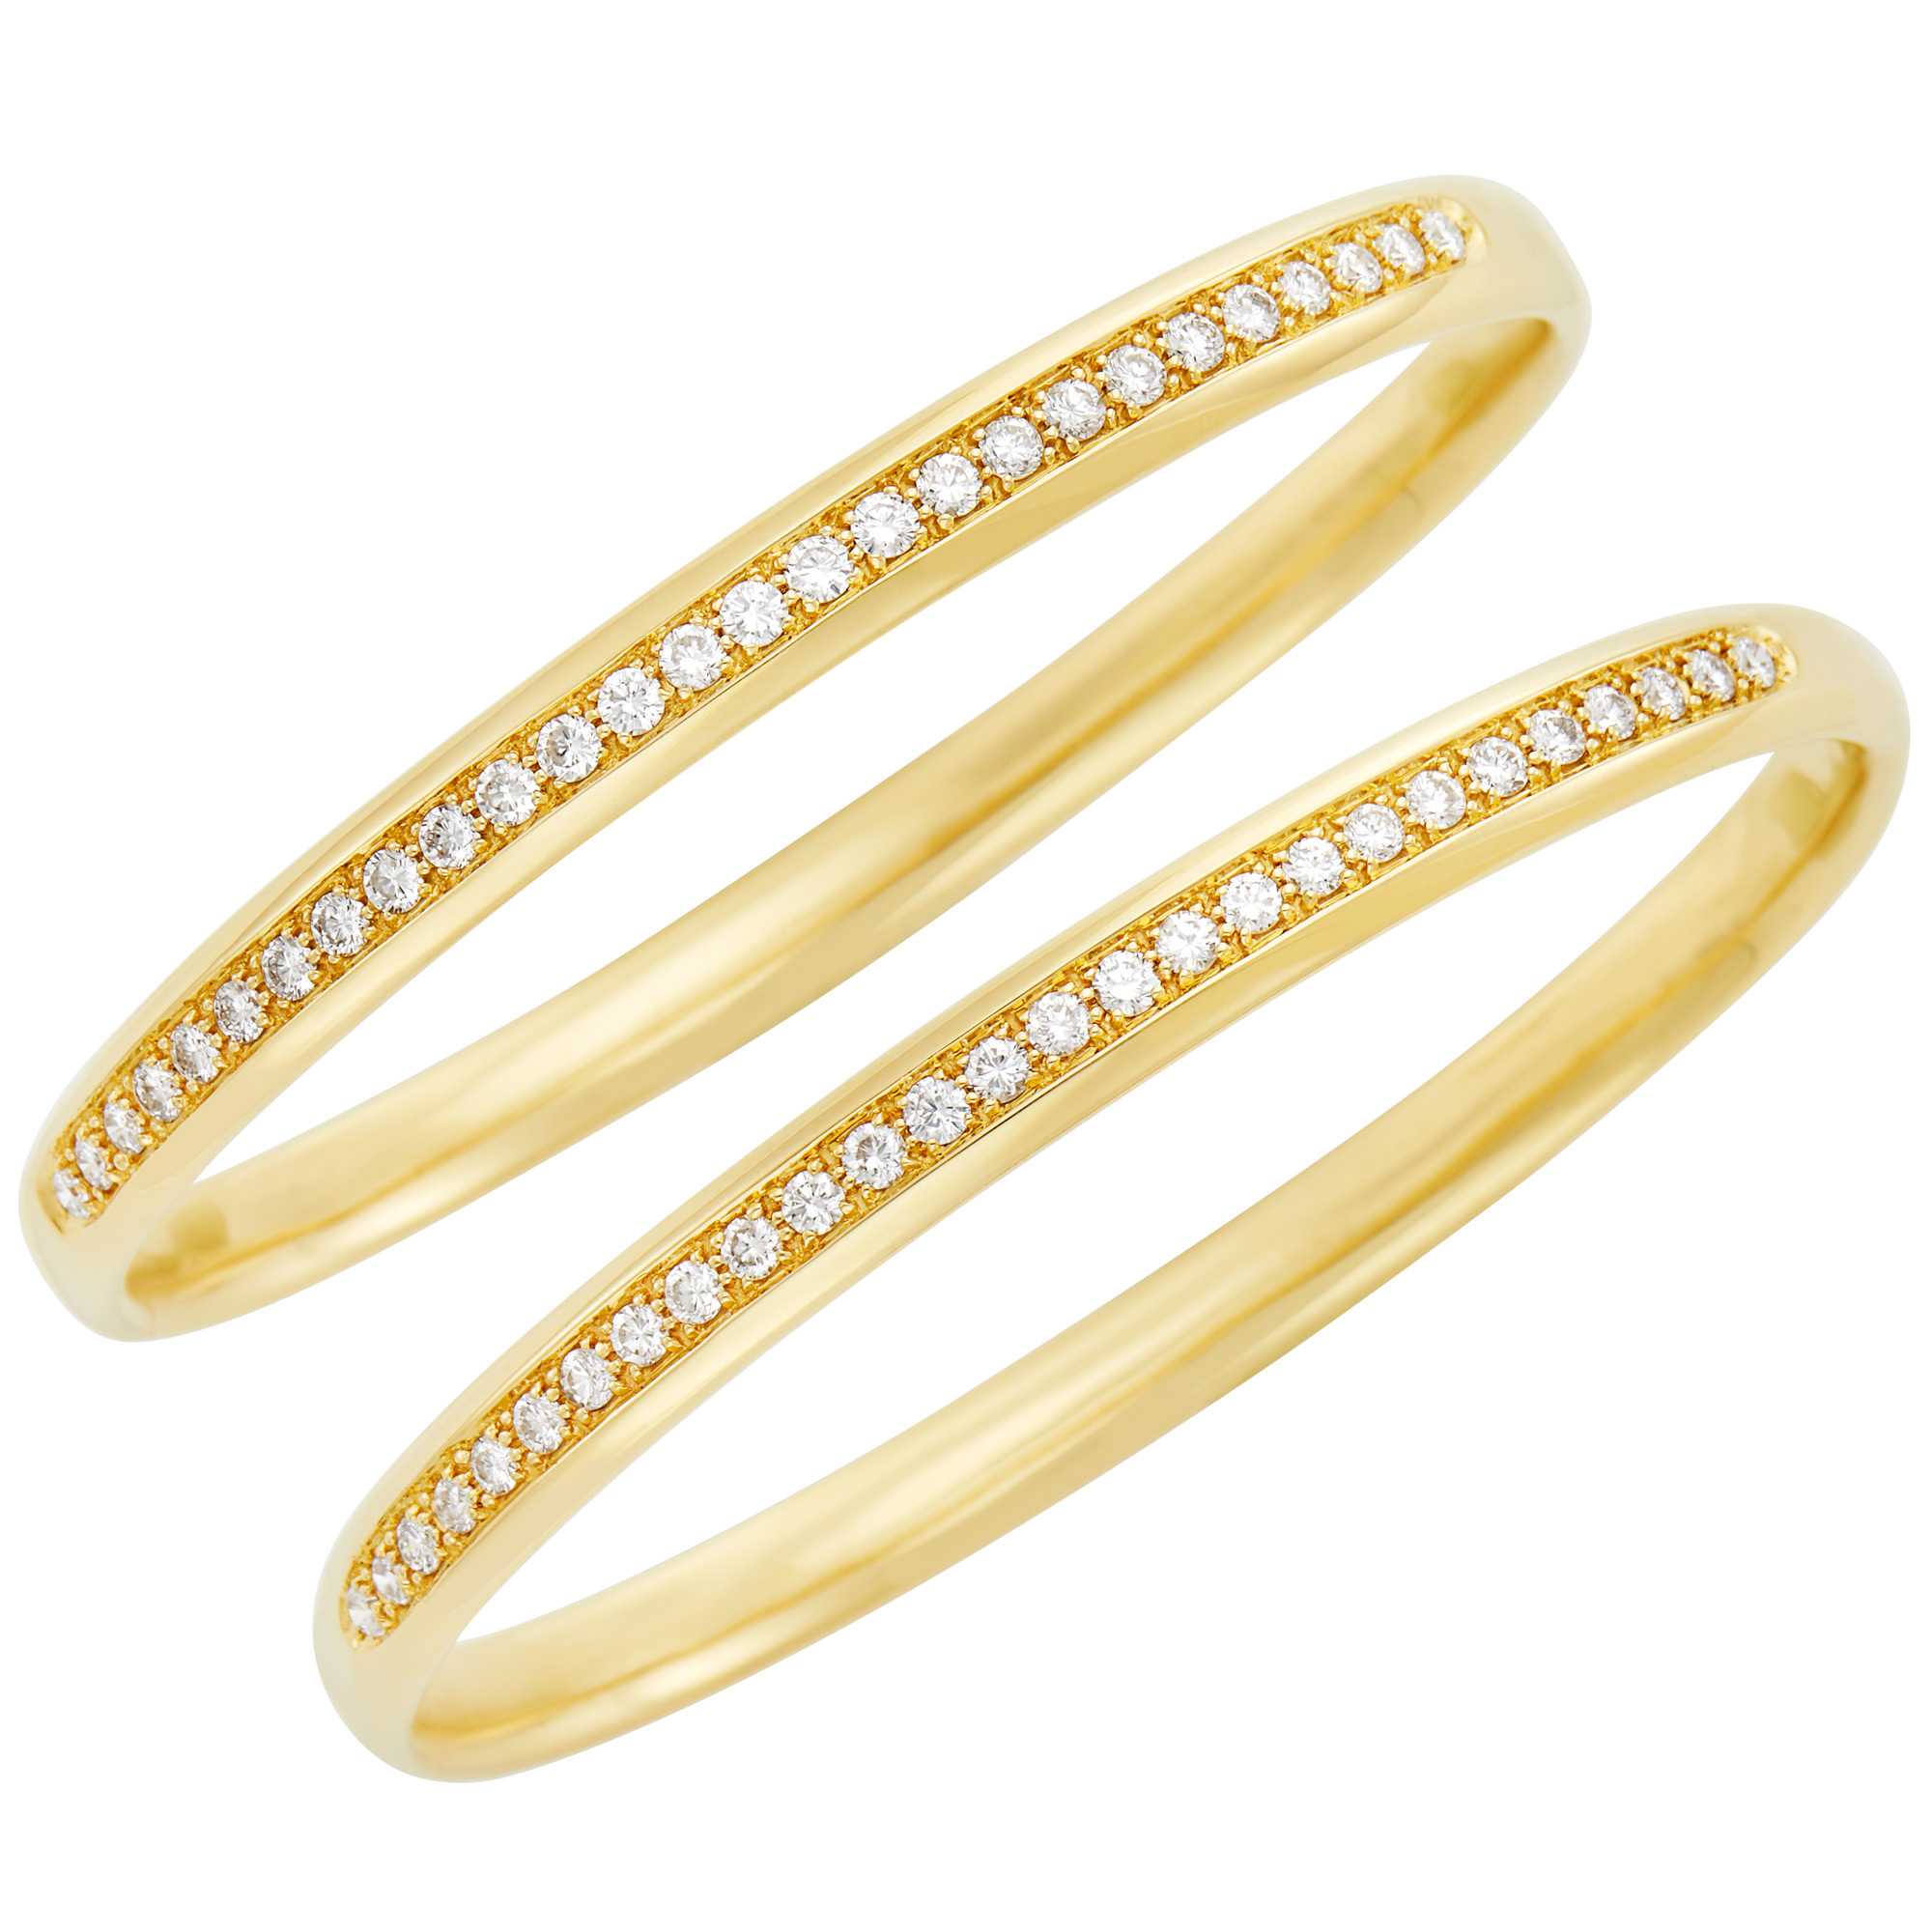 Lot image - Pair of Gold and Diamond Bangle Bracelets